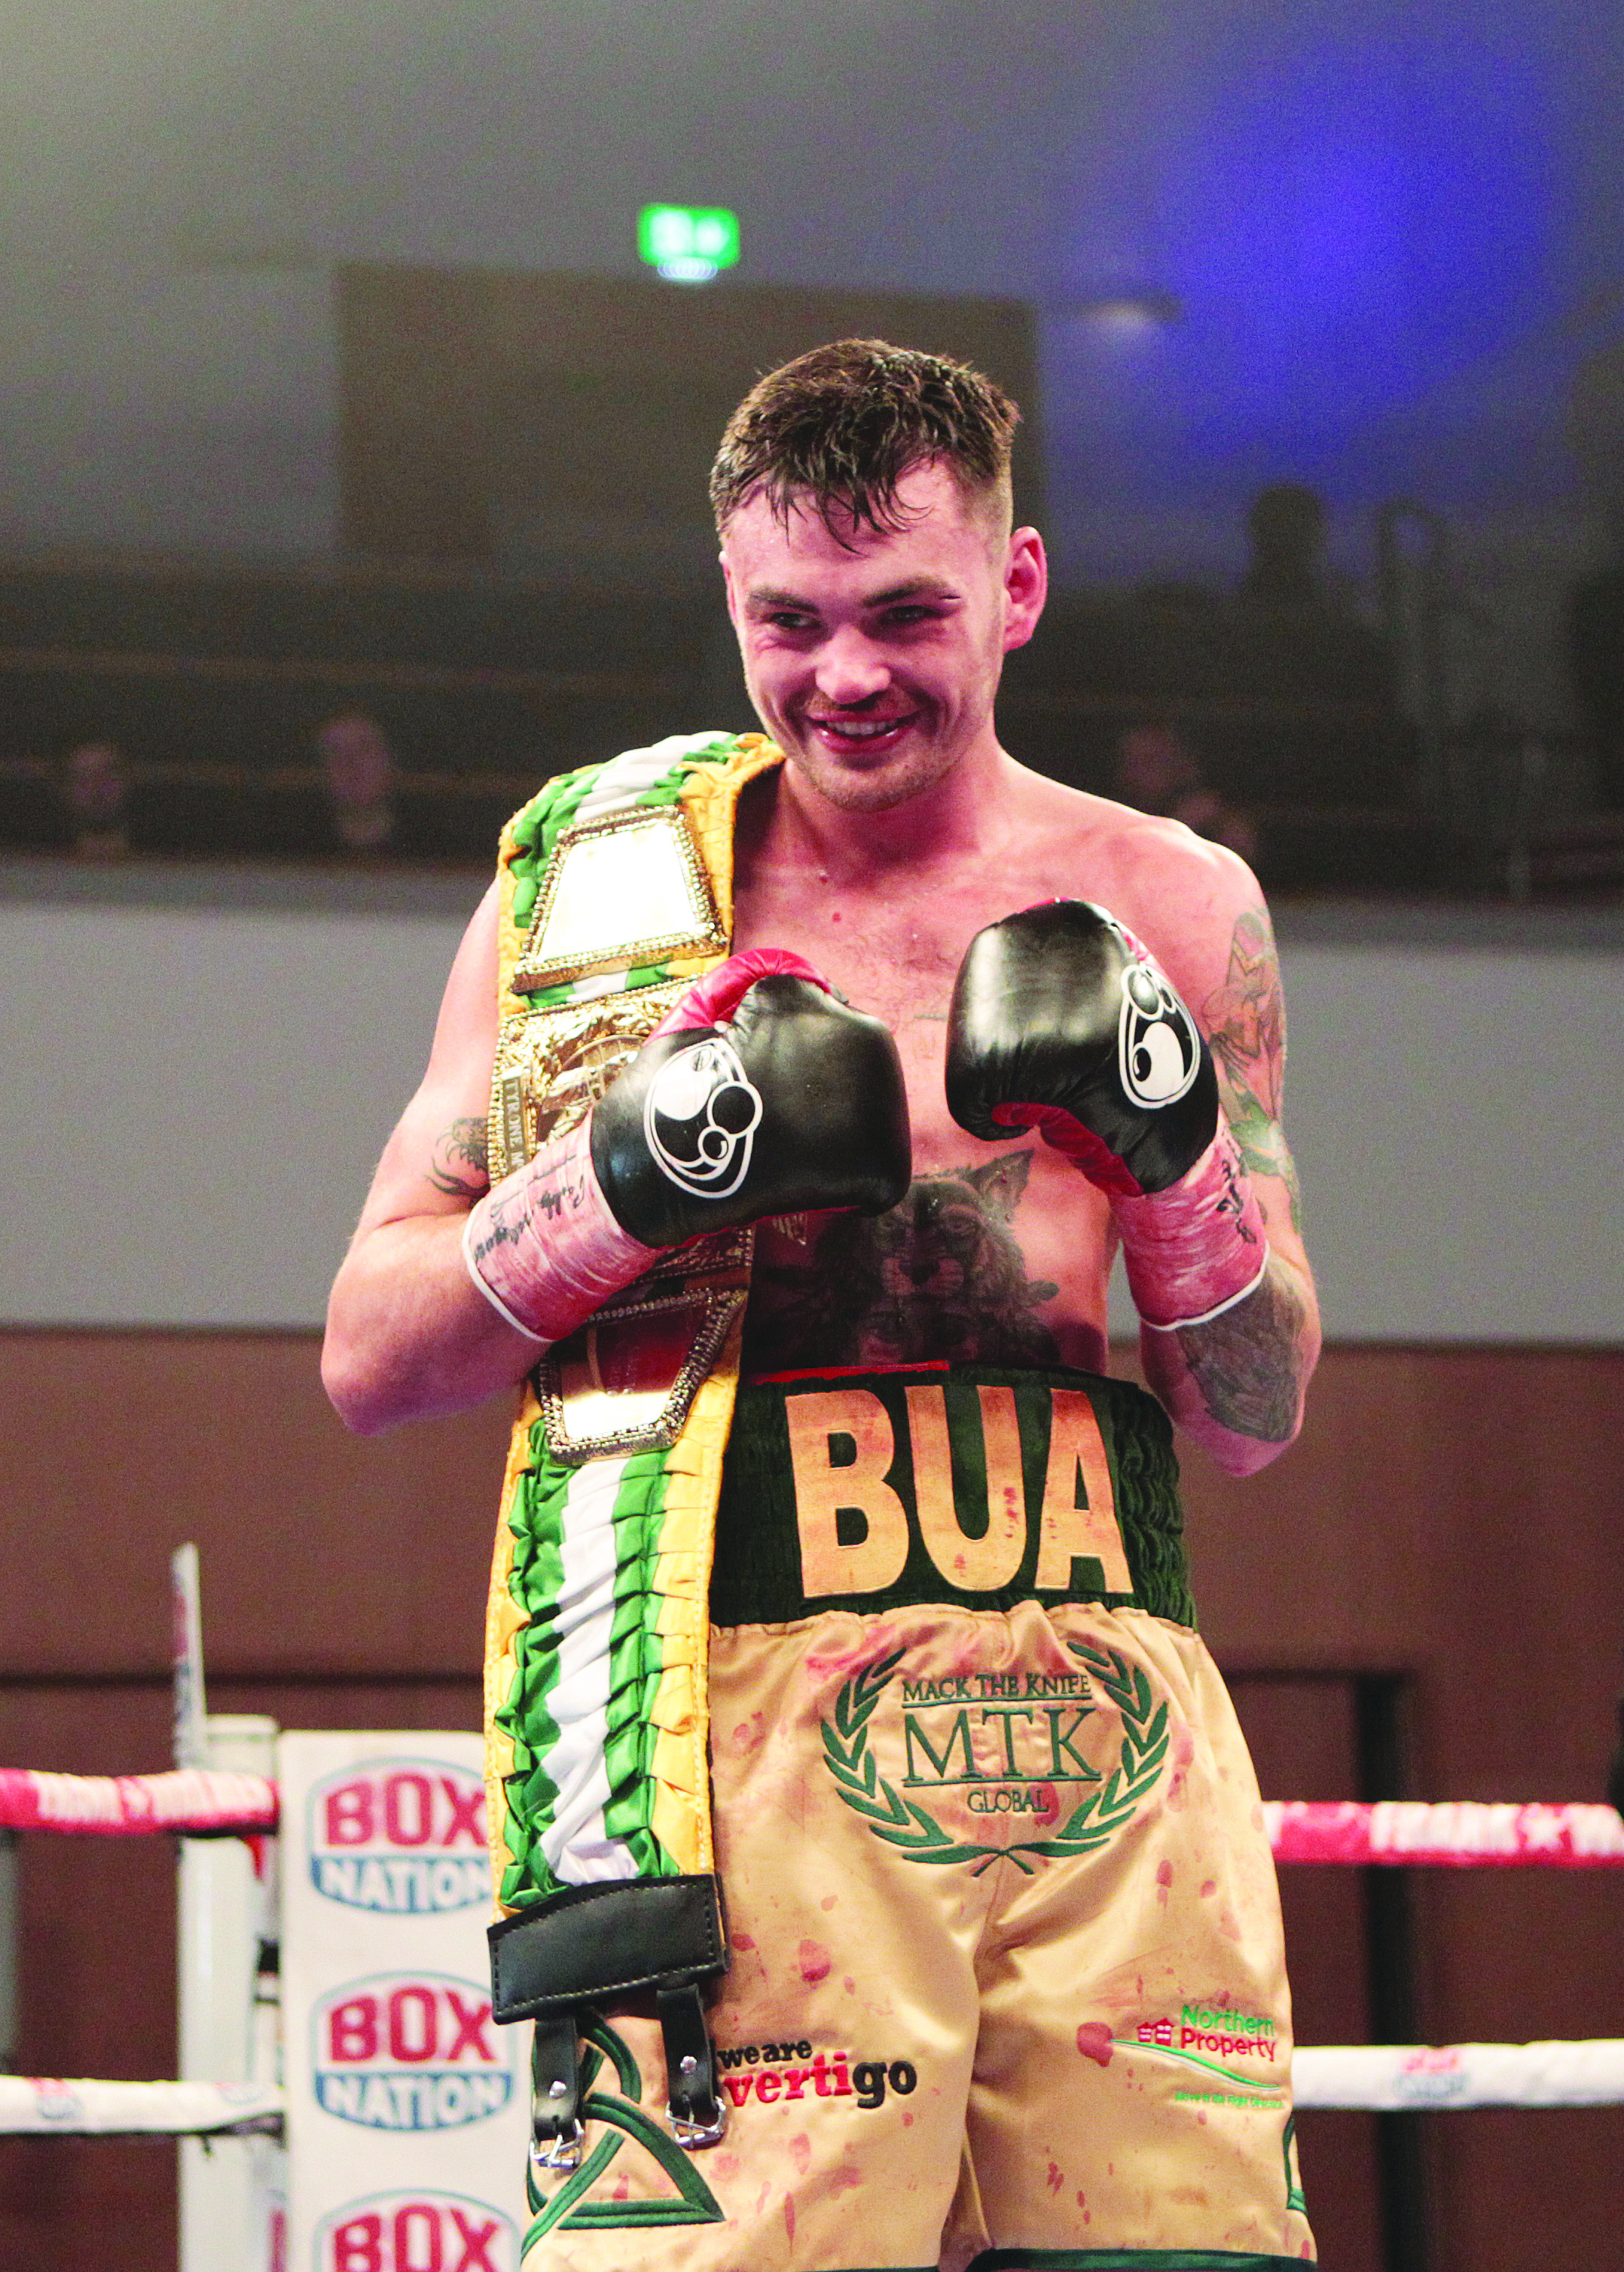 Tyrone McKenna stopped Jake Hanney in the sixth round to defend his BUICeltic Nations title